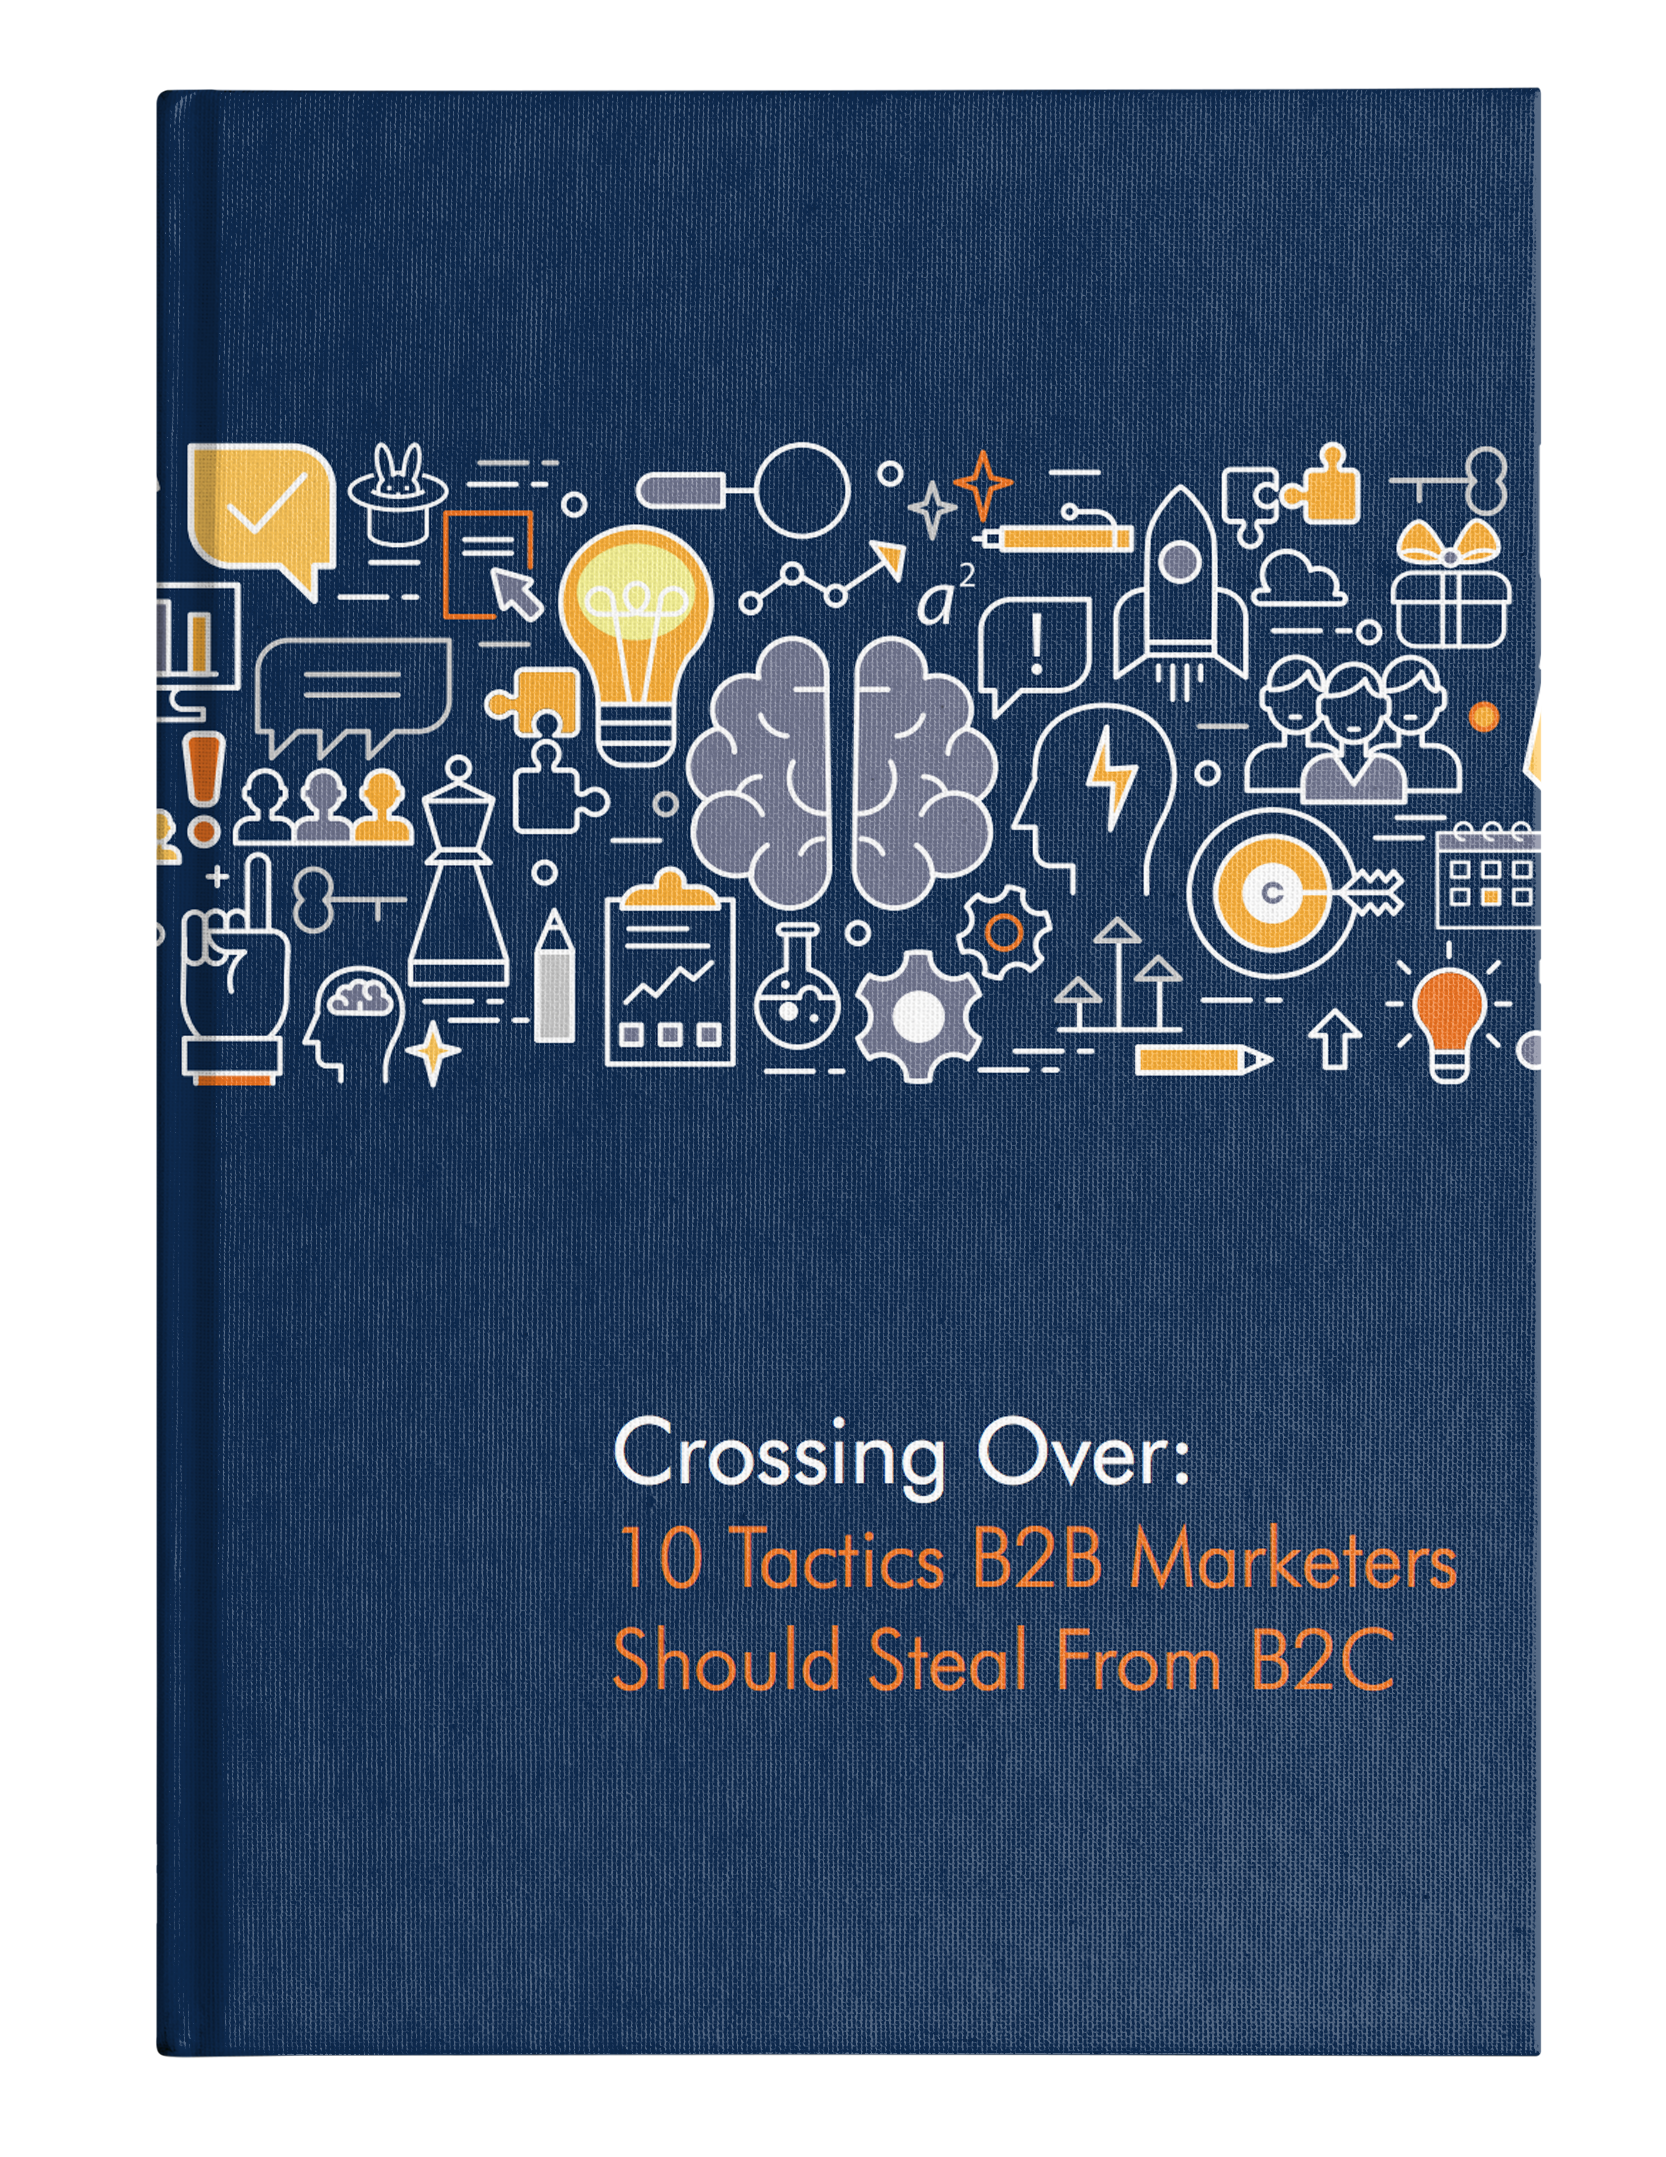 10Tactics B2B Marketers Should Steal From B2C